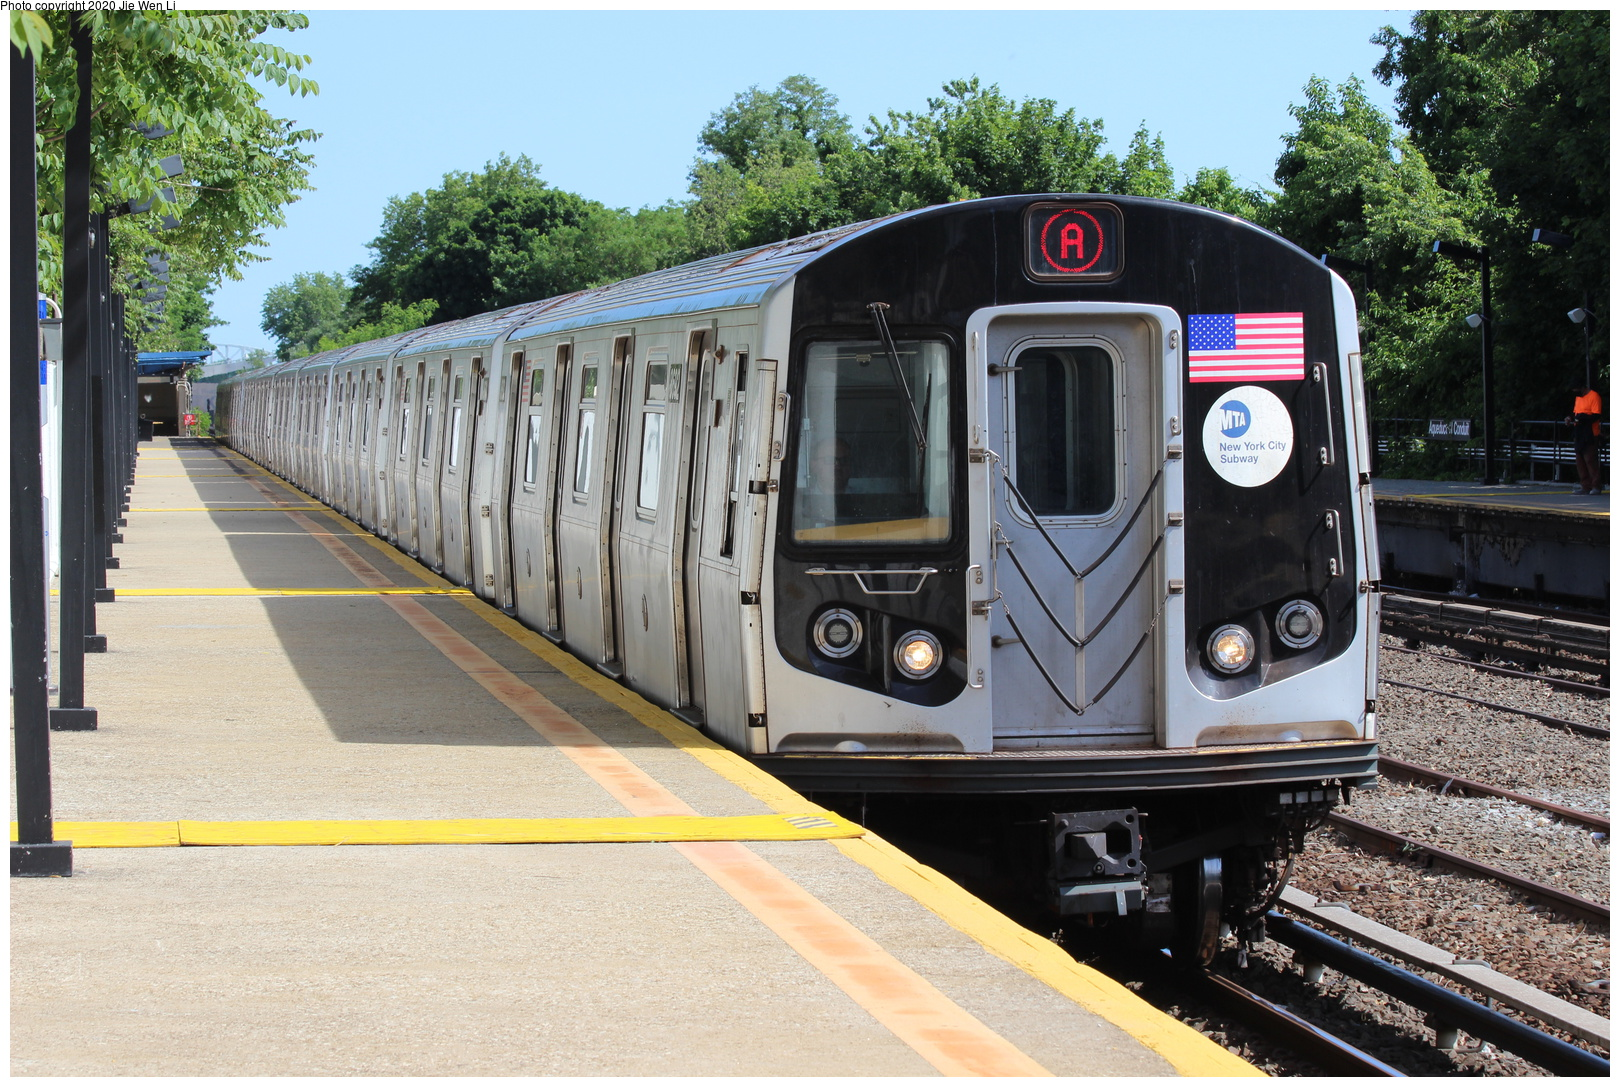 (261k, 1044x1037)<br><b>Country:</b> United States<br><b>City:</b> New York<br><b>System:</b> New York City Transit<br><b>Line:</b> BMT Canarsie Line<br><b>Location:</b> Broadway Junction <br><b>Car:</b> BMT Multi  <br><b>Photo by:</b> Joel Shanus<br><b>Notes:</b> Lefferts (Fulton line) train at Bway Jct.<br><b>Viewed (this week/total):</b> 2 / 1227